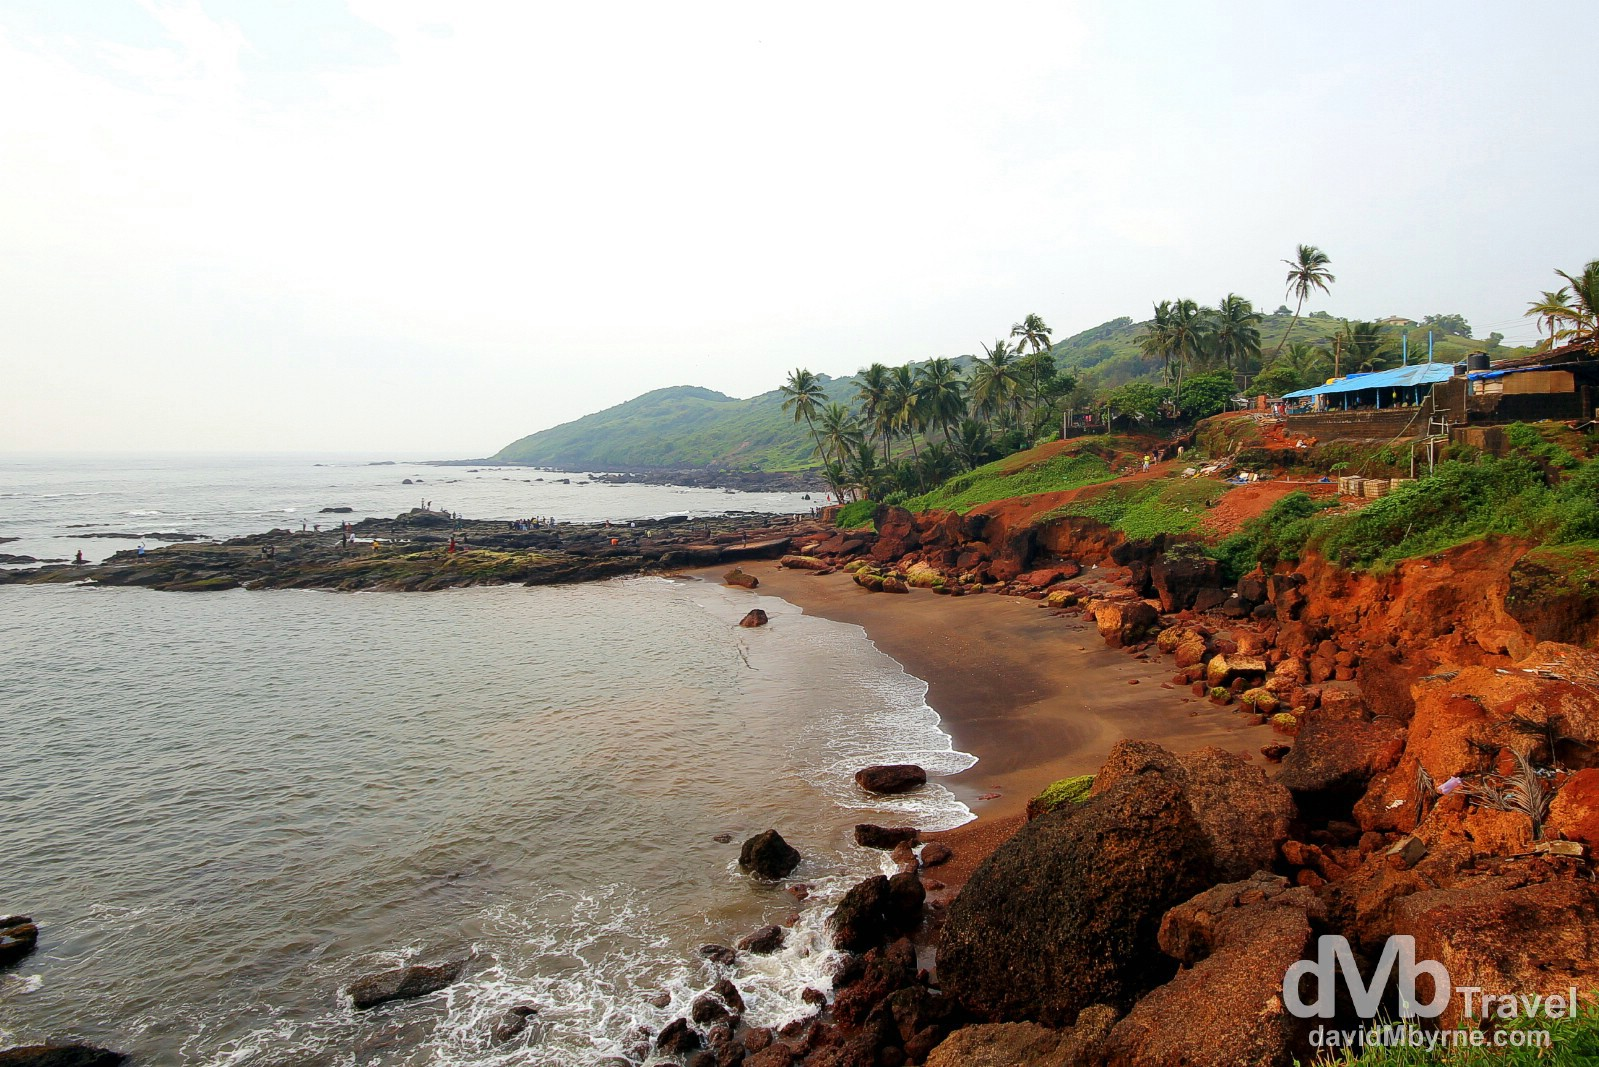 A section of coastline at Anjuna, Goa, India. September 29th 2012.